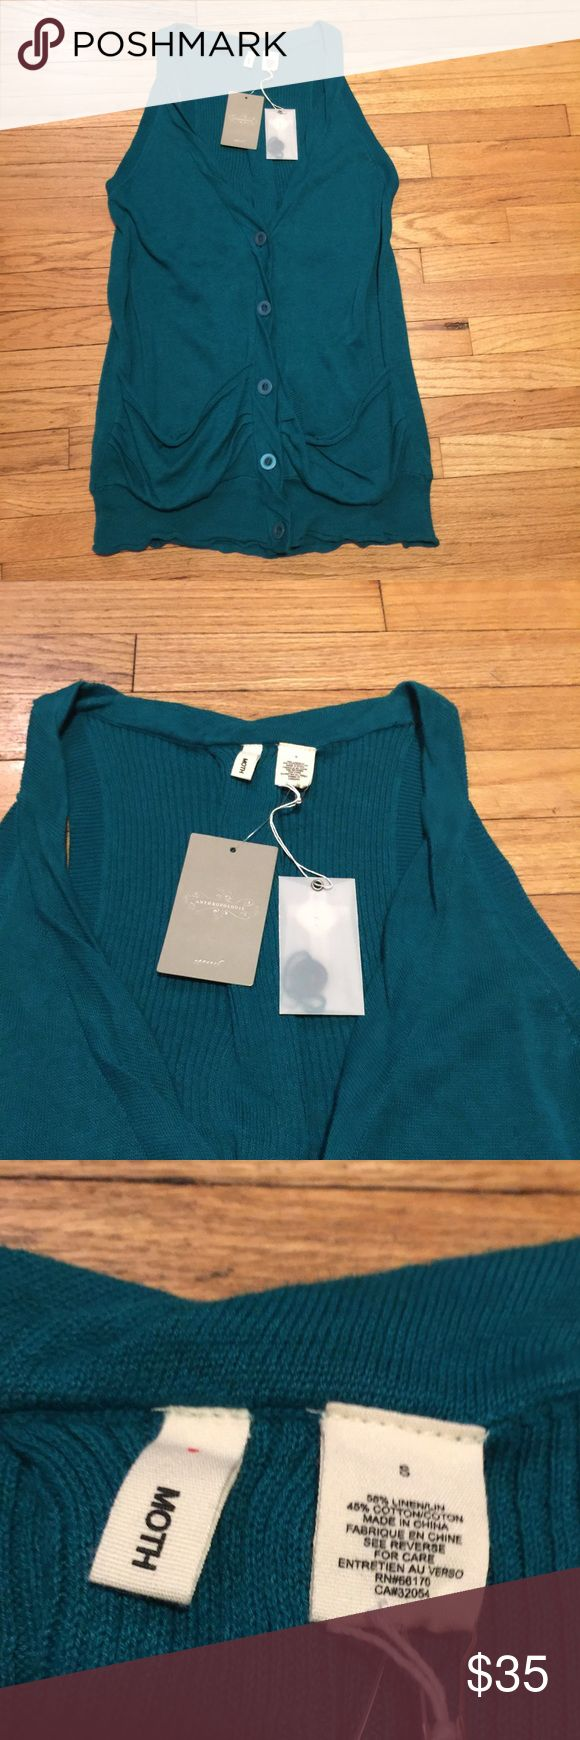 NWT Anthropologie Moth teal sleeveless sweater - S NWT Anthropologie Moth teal sleeveless sweater - Small. Armpit to armpit - 17 inches. Length - 29 inches. Brand new with tags. Anthropologie Sweaters Cardigans